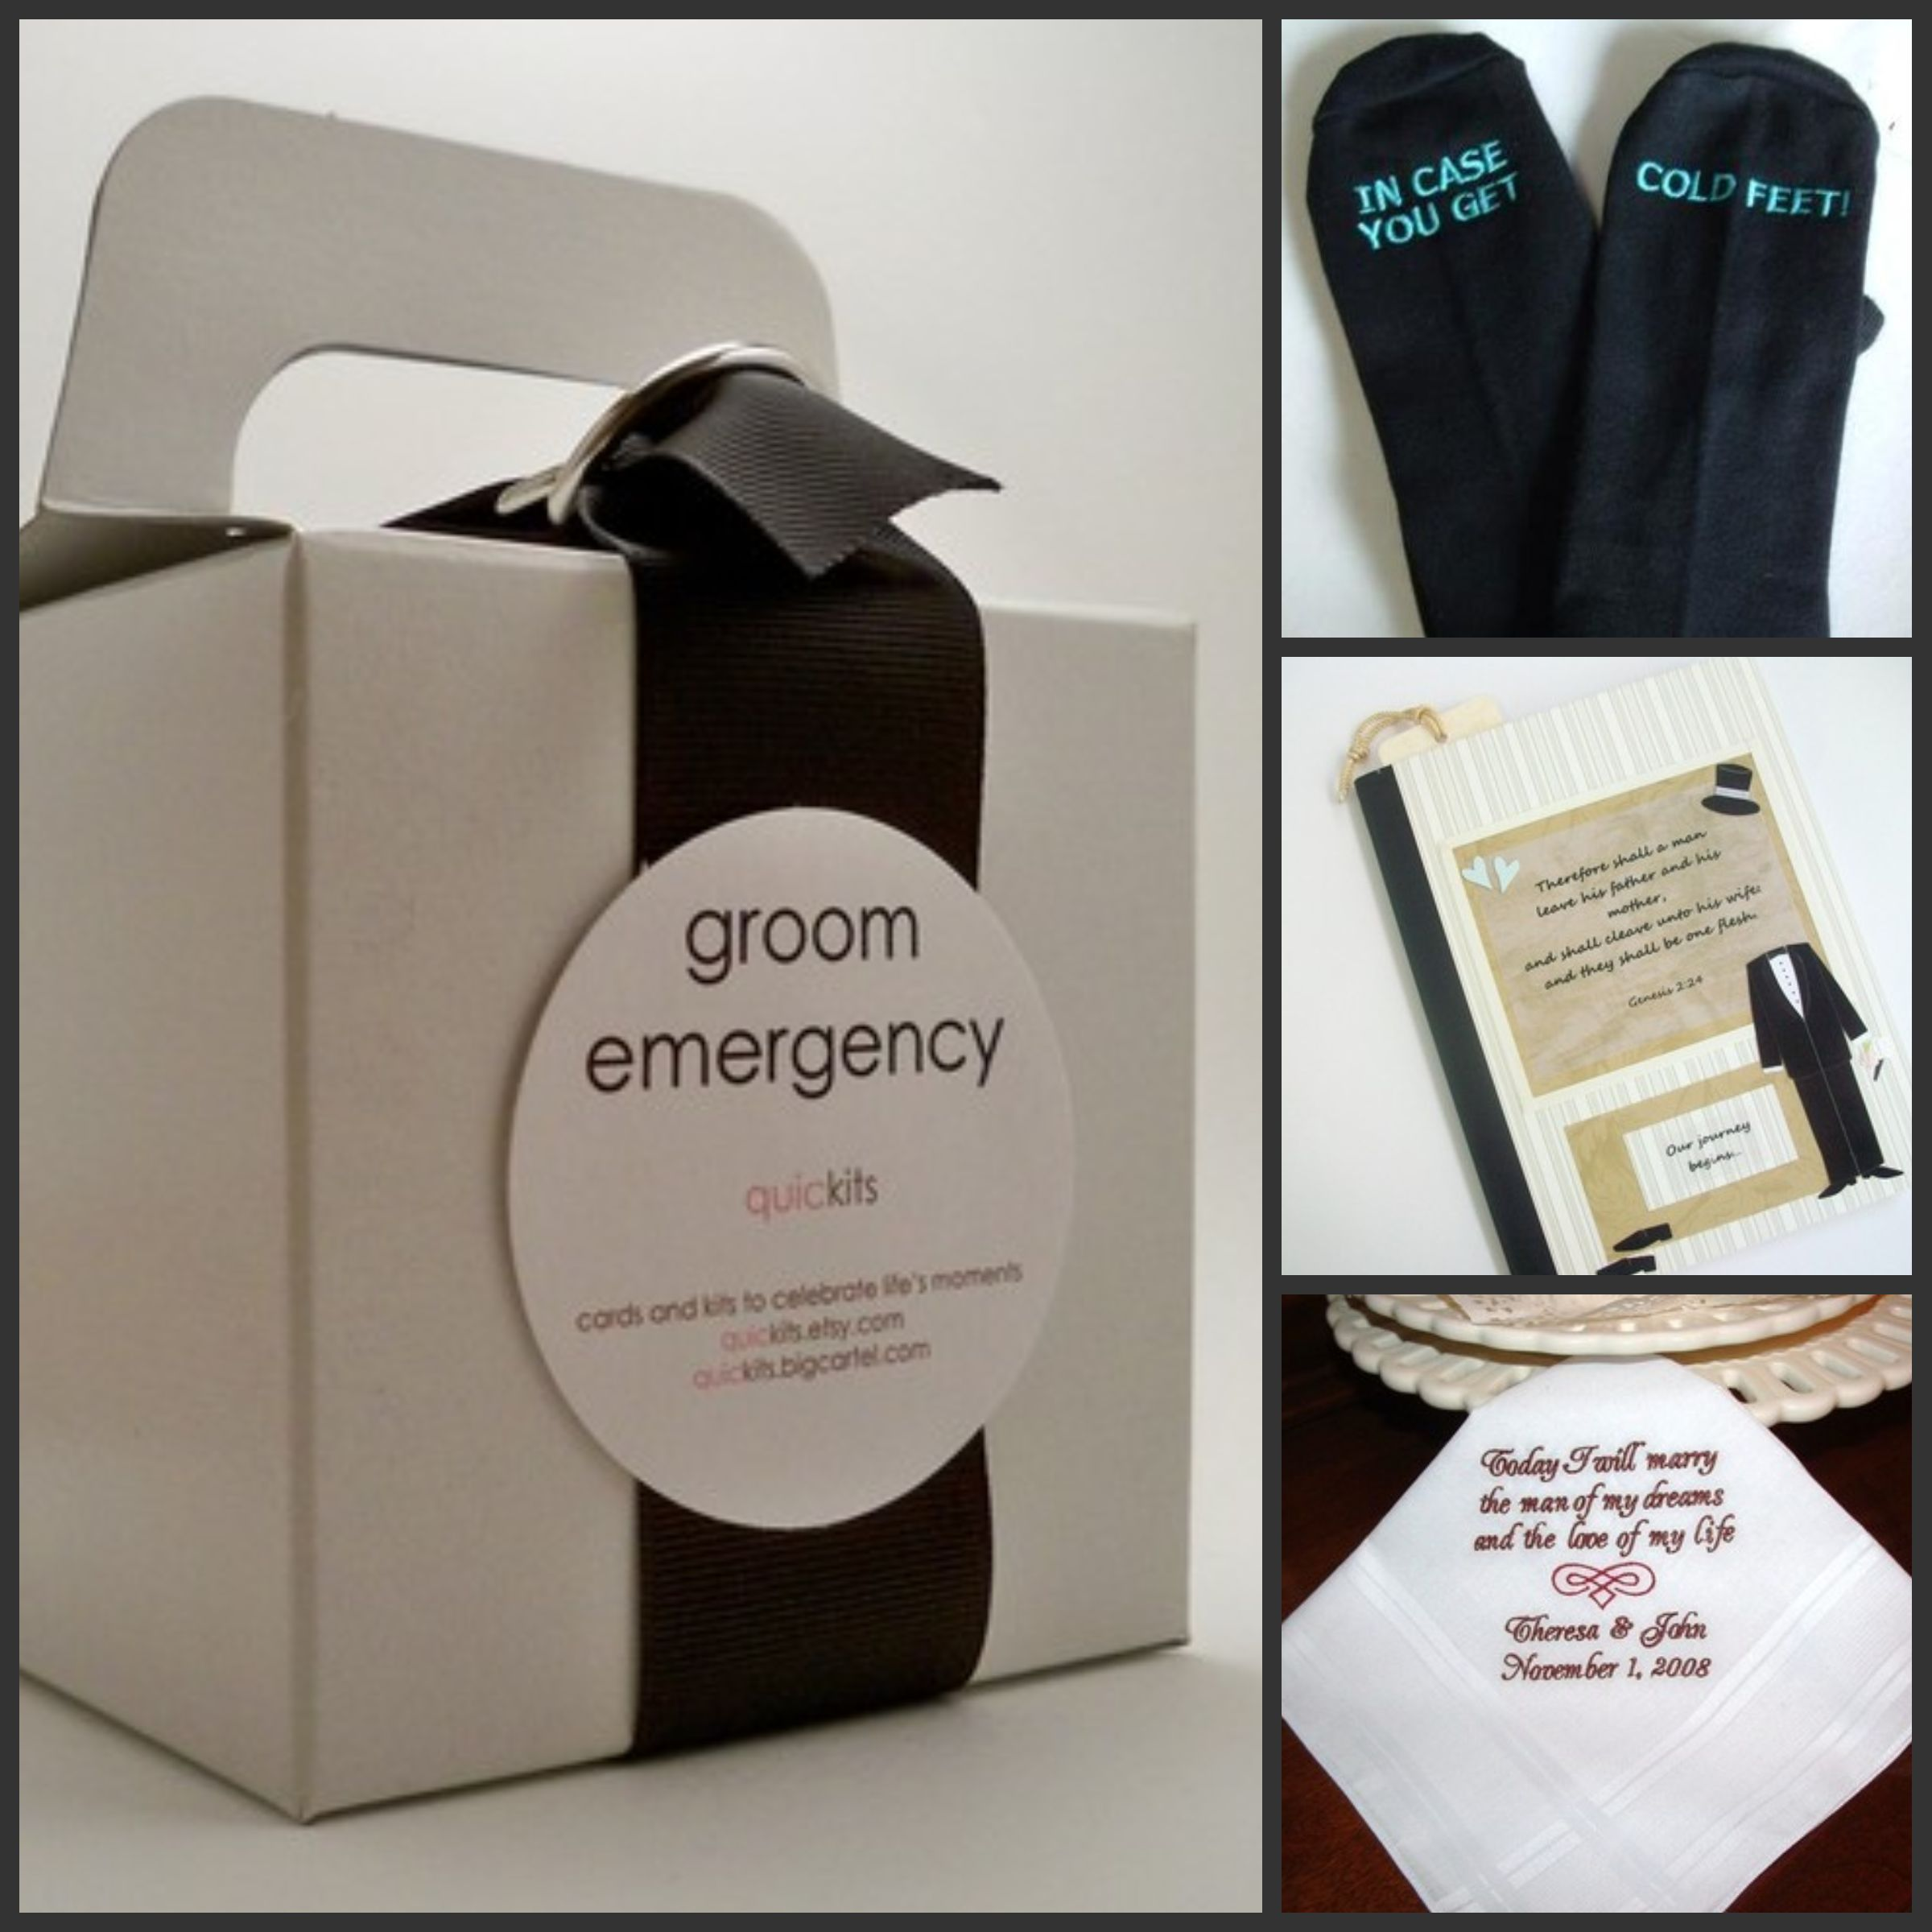 Wedding Gift For Groom On Wedding Day : personal gifts for your groom clockwise from left groom emergency kit ...